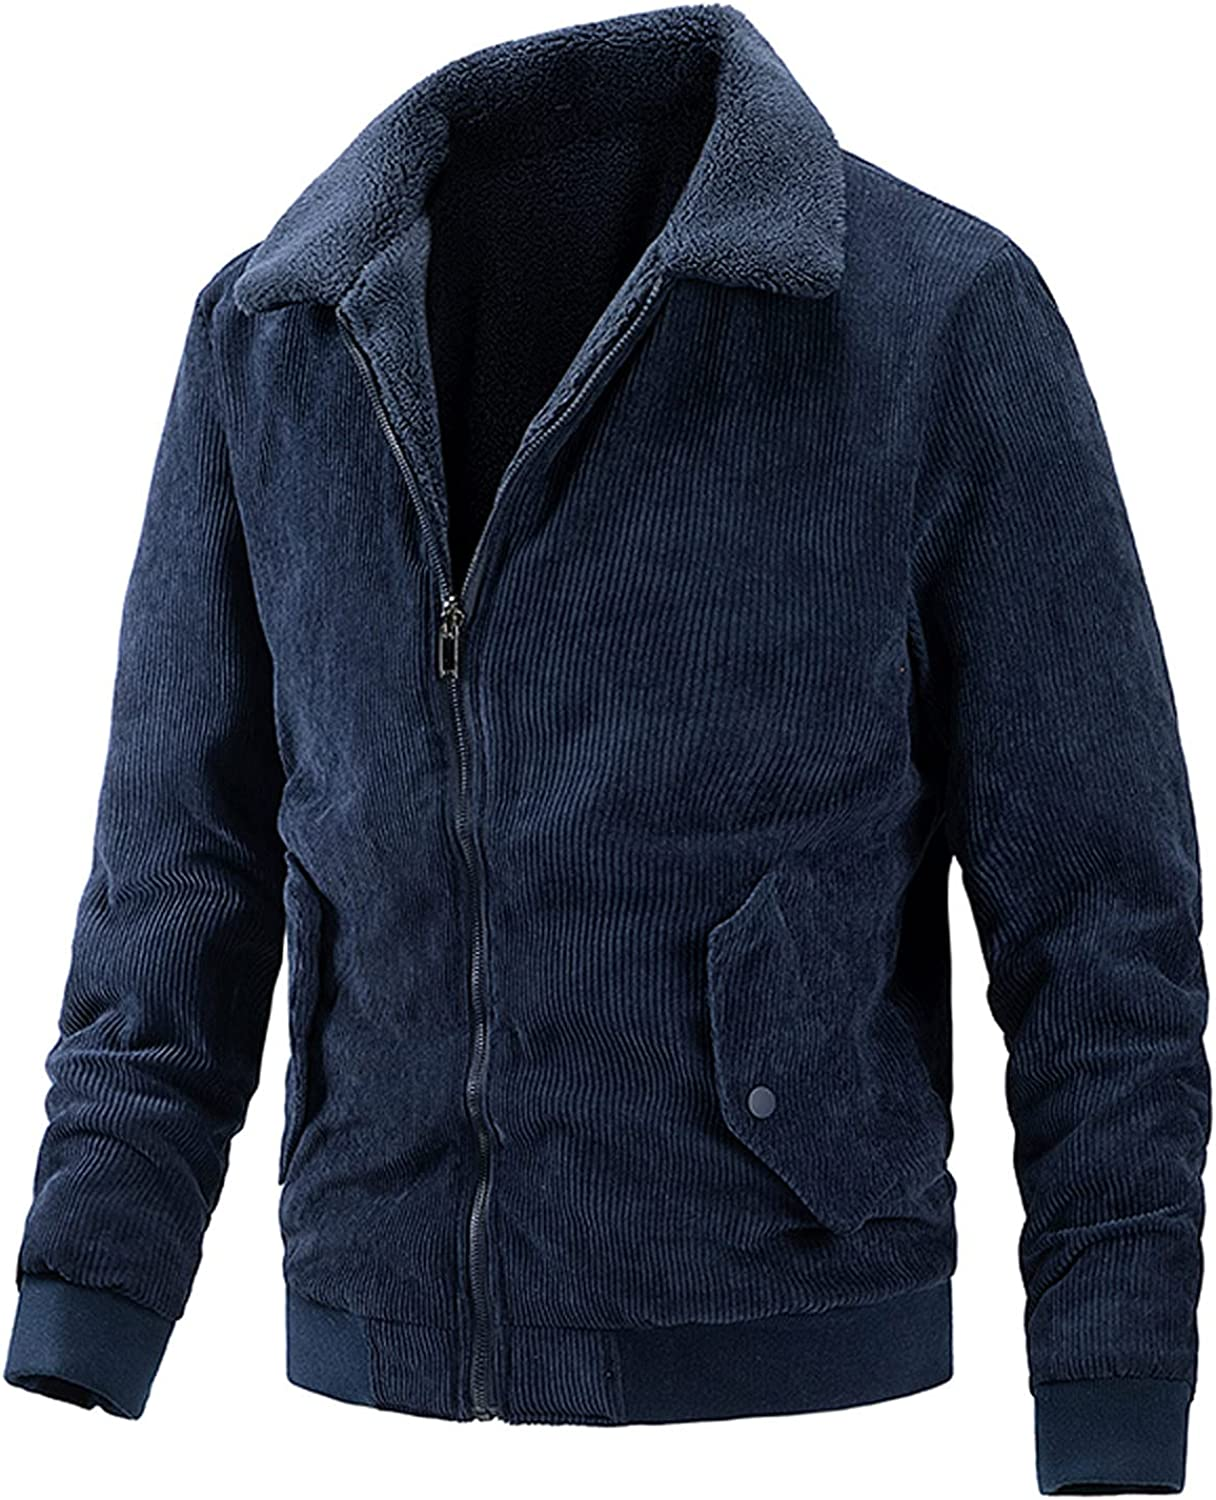 FORUU Military Jackets For Men Casual Autumn Winter Warm Wear On Both Sides Coats with Pockets Oversize Peacoat Outwear